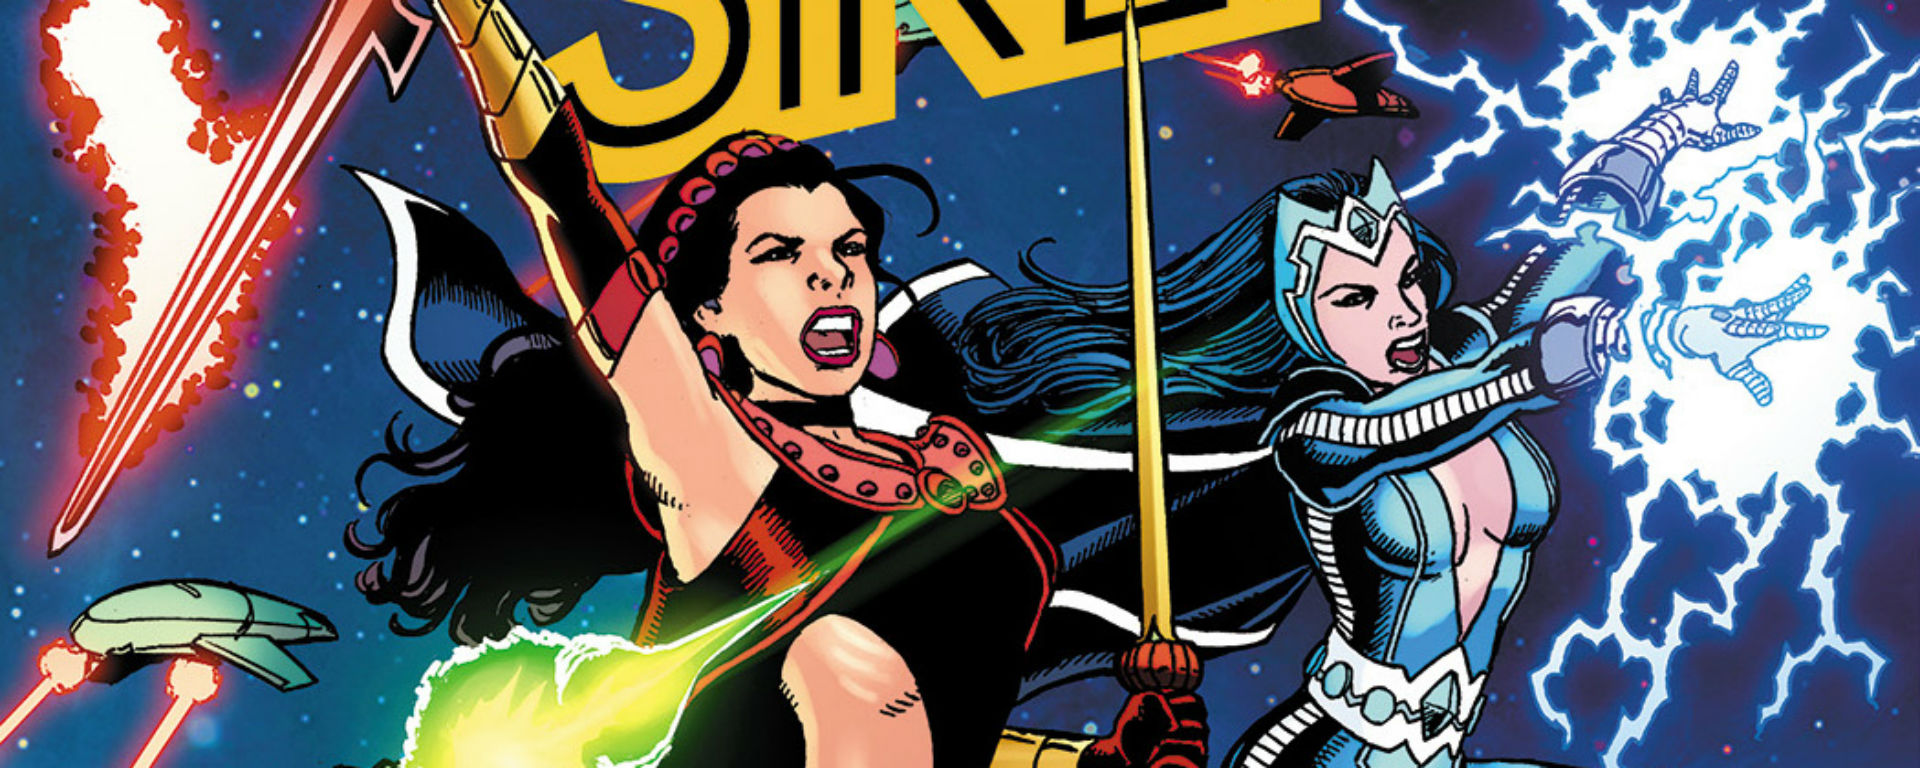 sirens comic review feature image